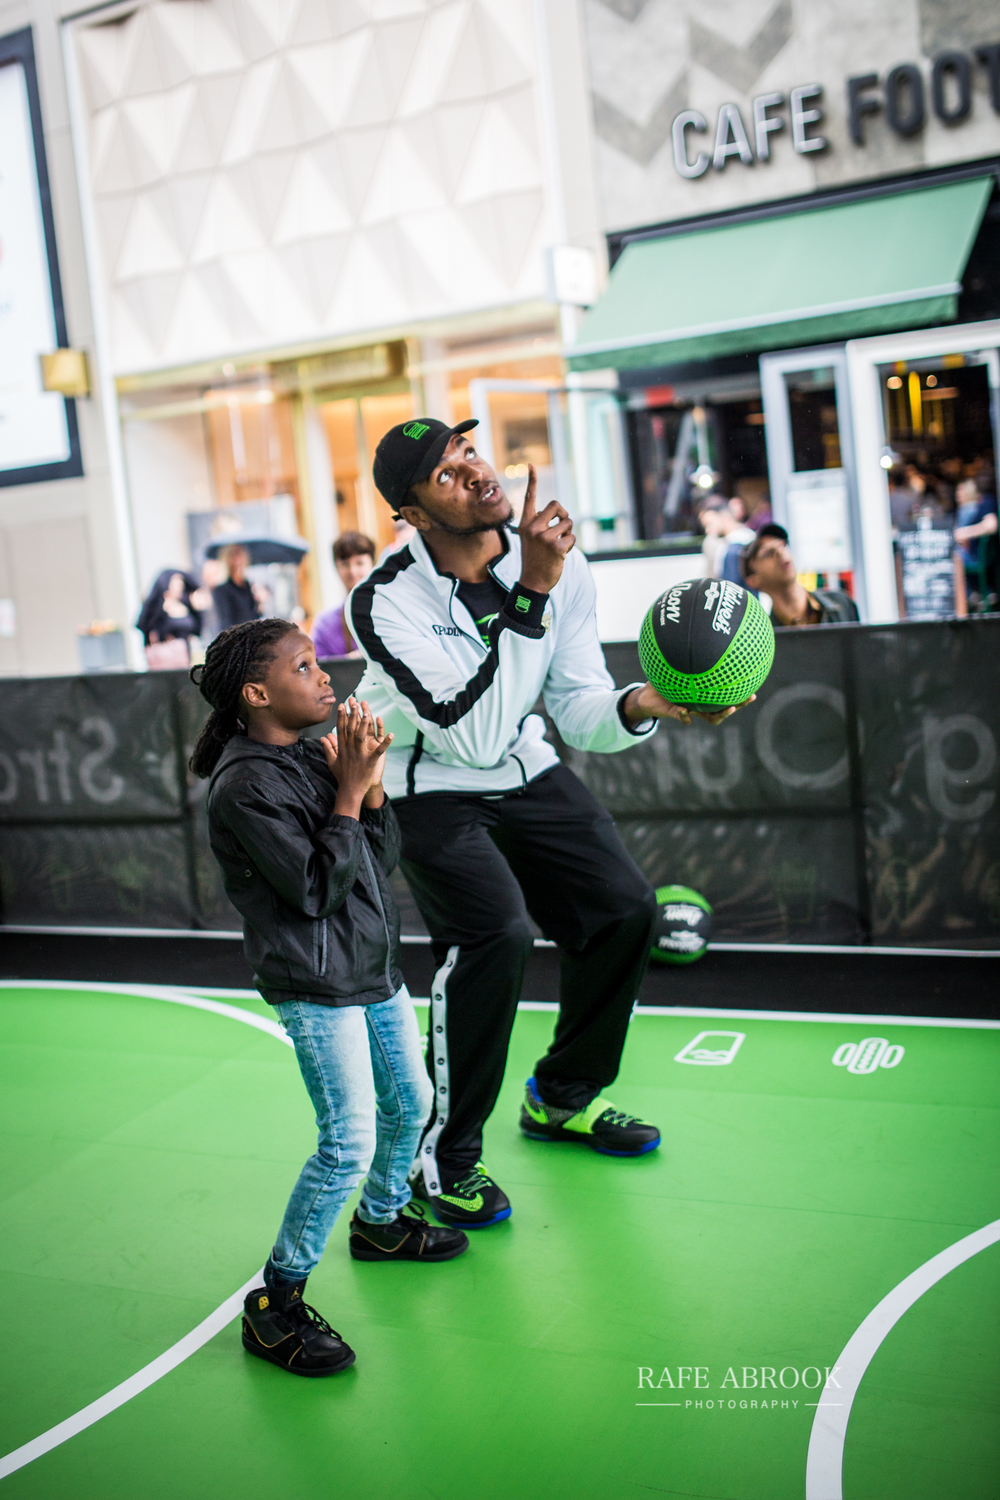 shake shack uk westfield stratford london experiential basketball-1202.jpg